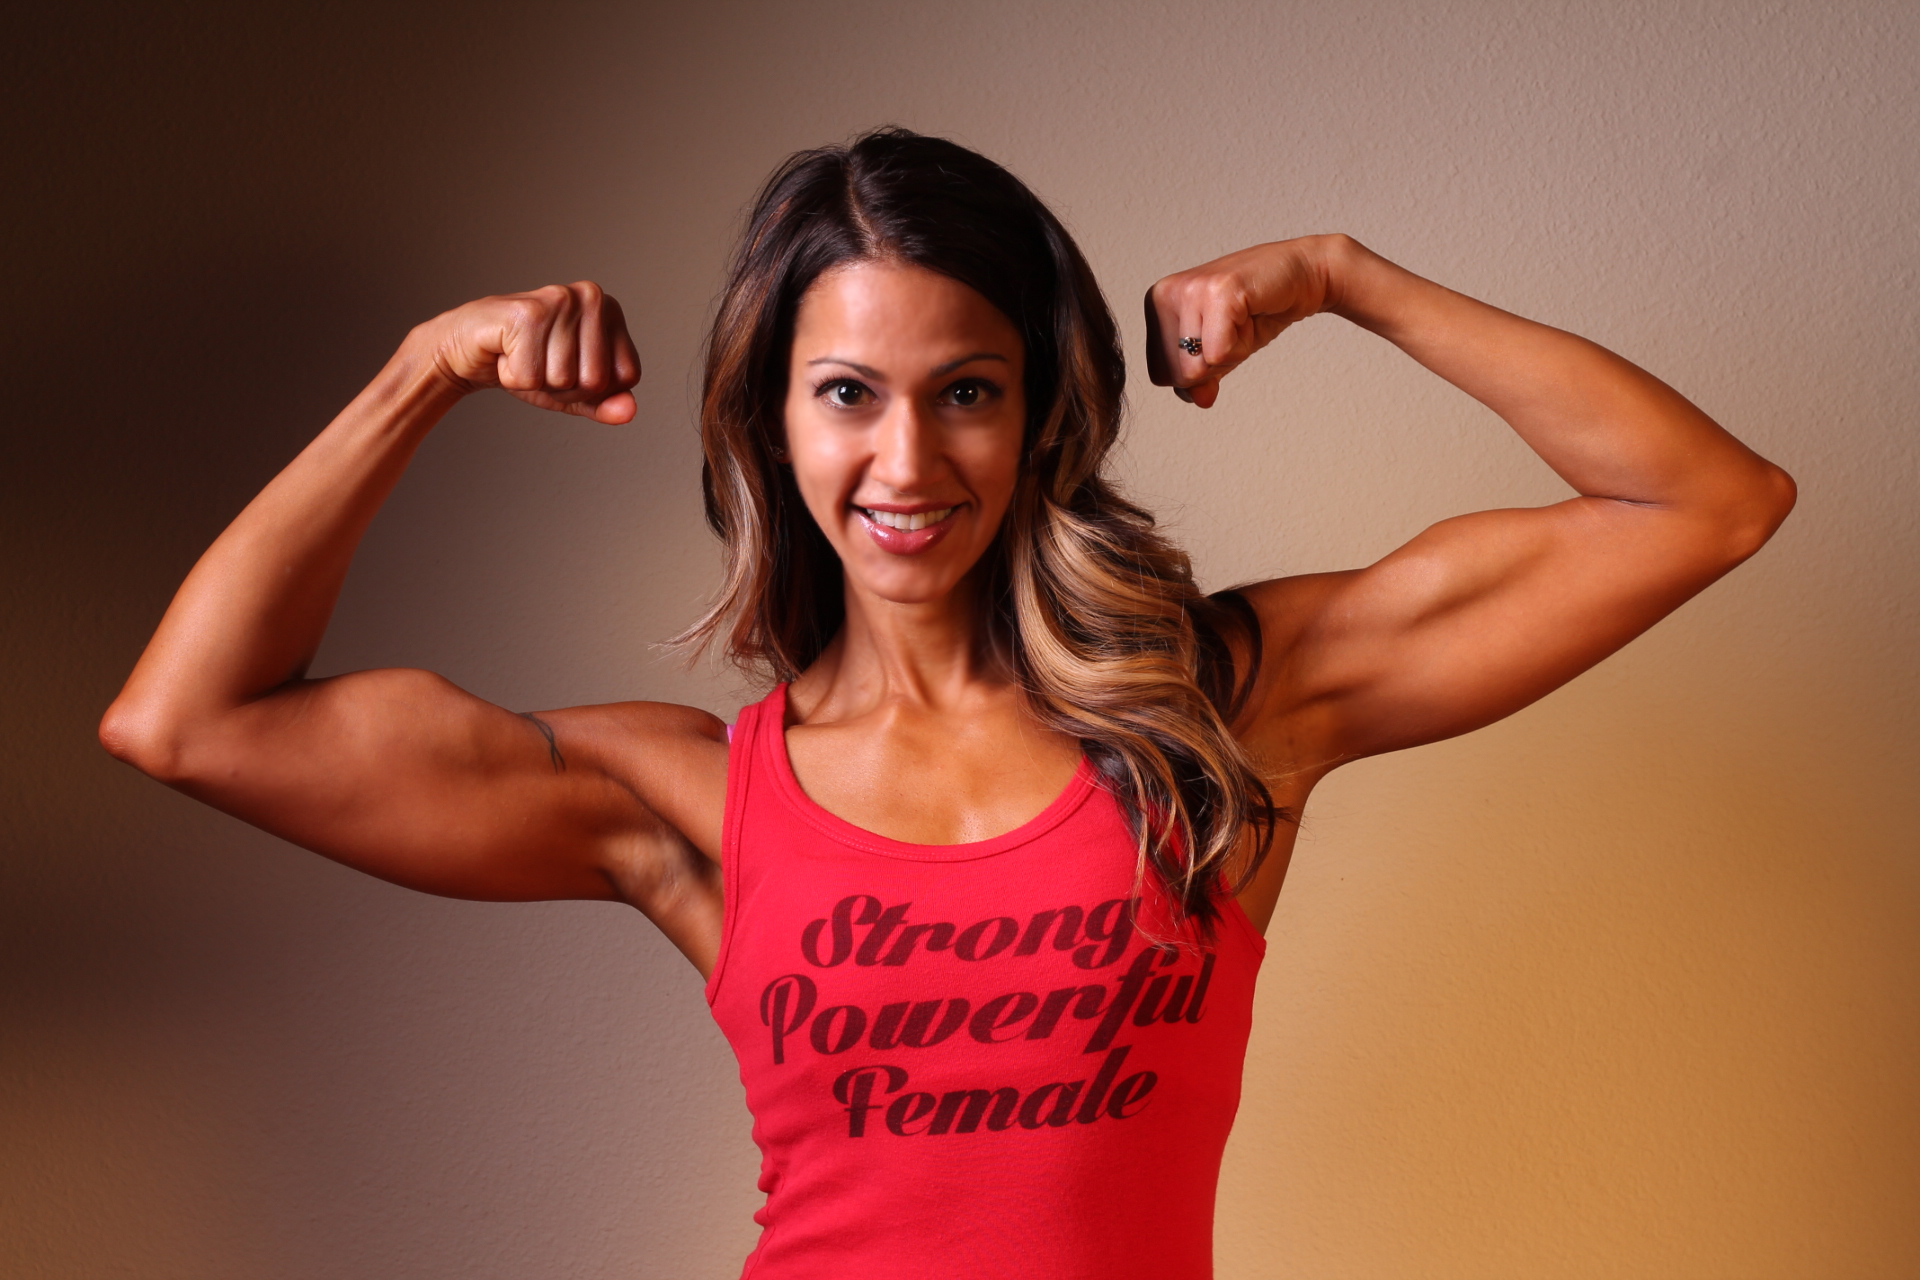 Sumi Singh Strong Powerful Female